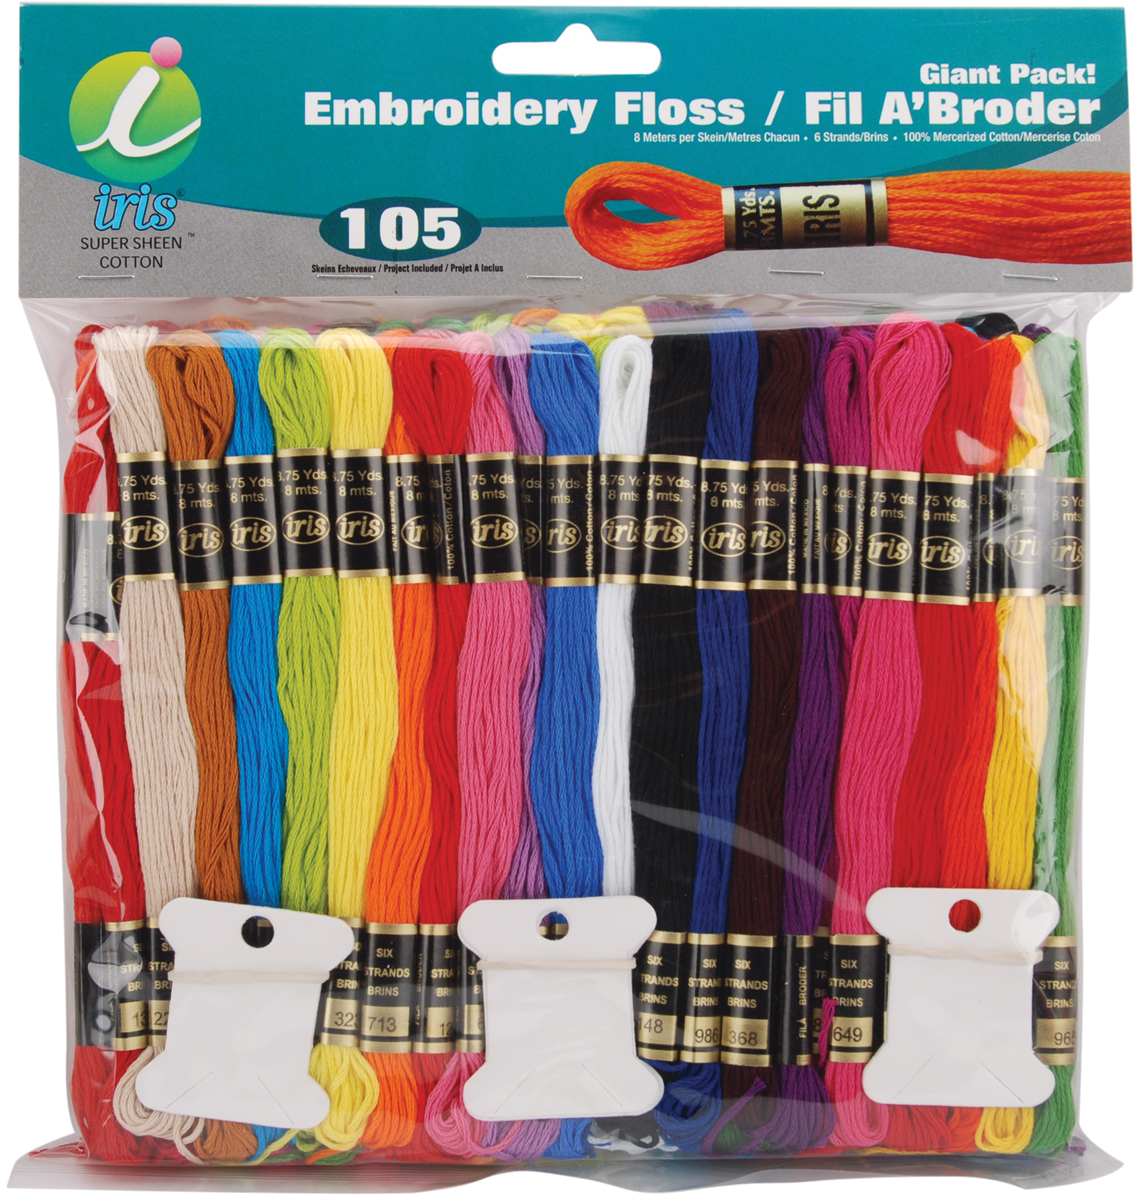 Embroidery Floss Giant Pack 8 Meters, 105/Pkg